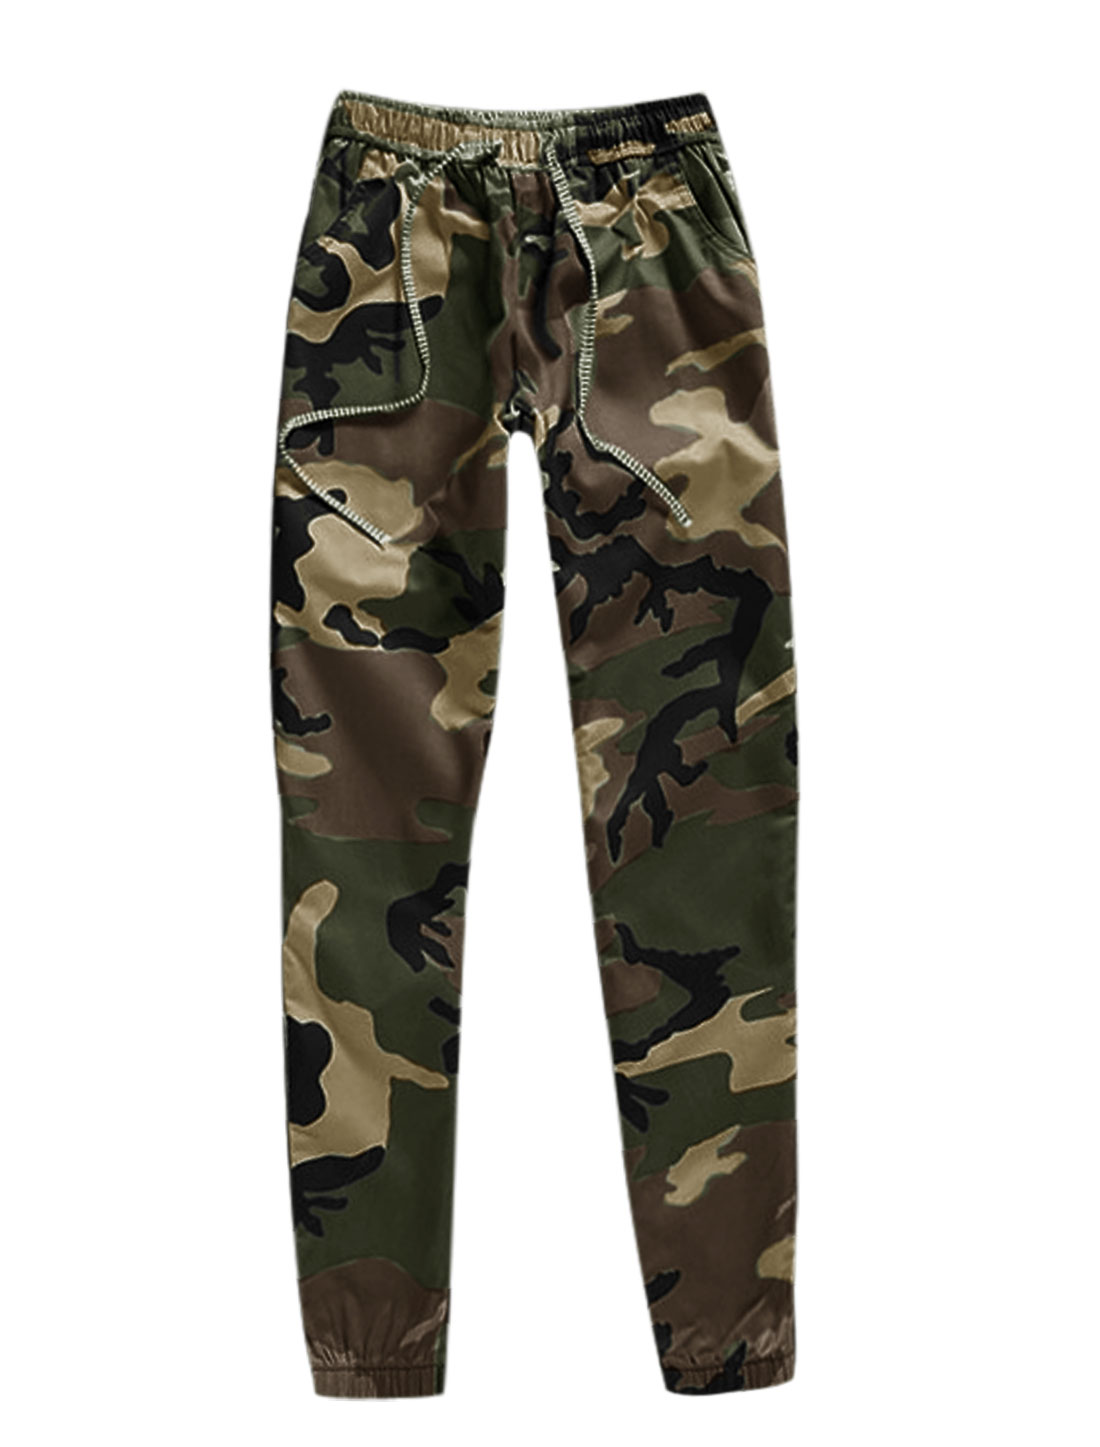 Men Camouflage Pattern Drawstring Elastic Waist Casual Pants Army Green W30